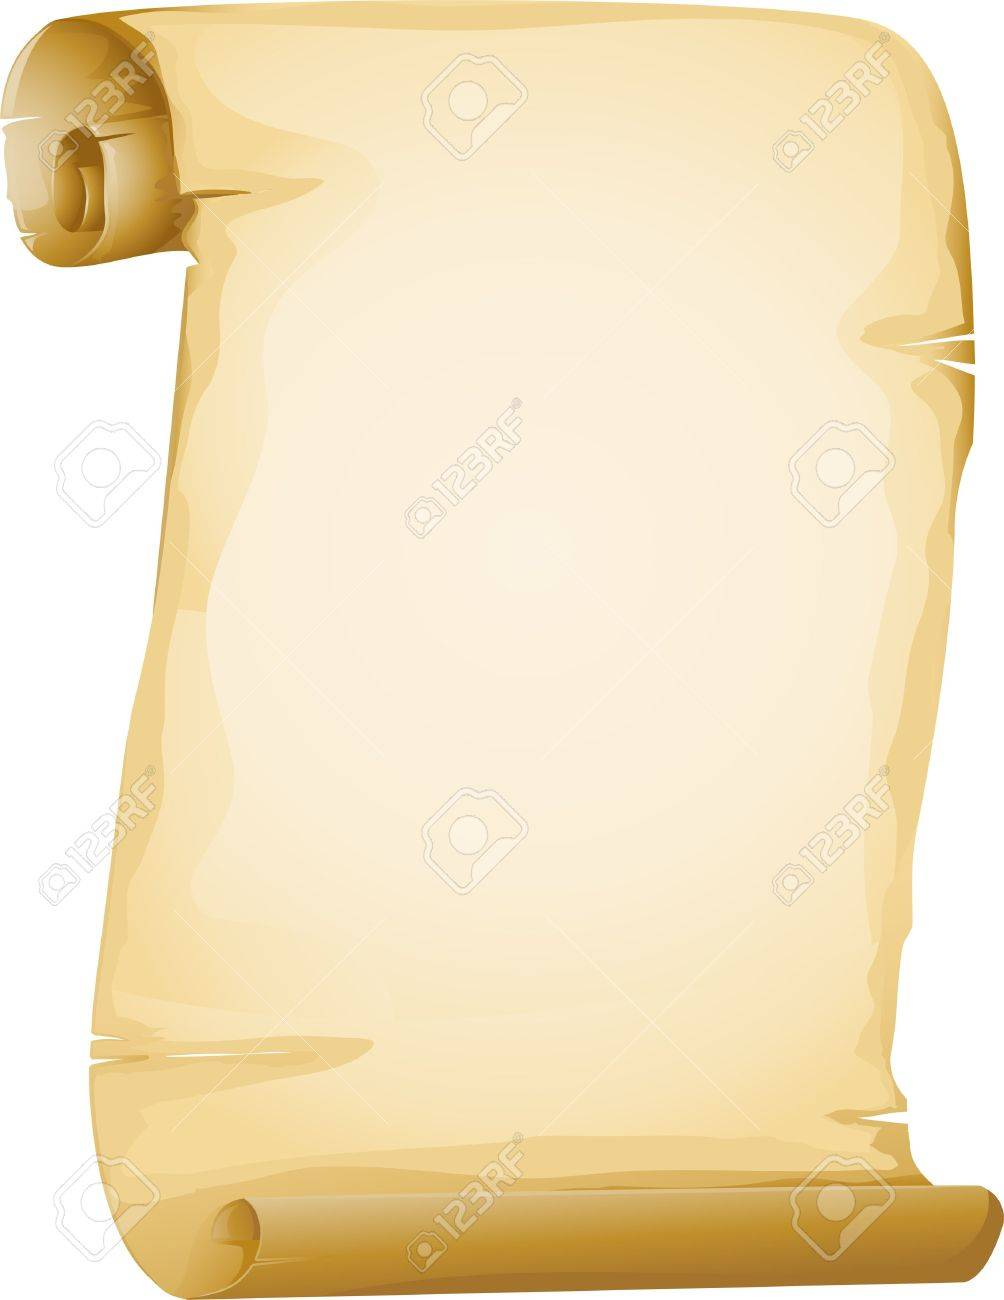 Illustration of an Old Scroll Stock Photo - 17430090